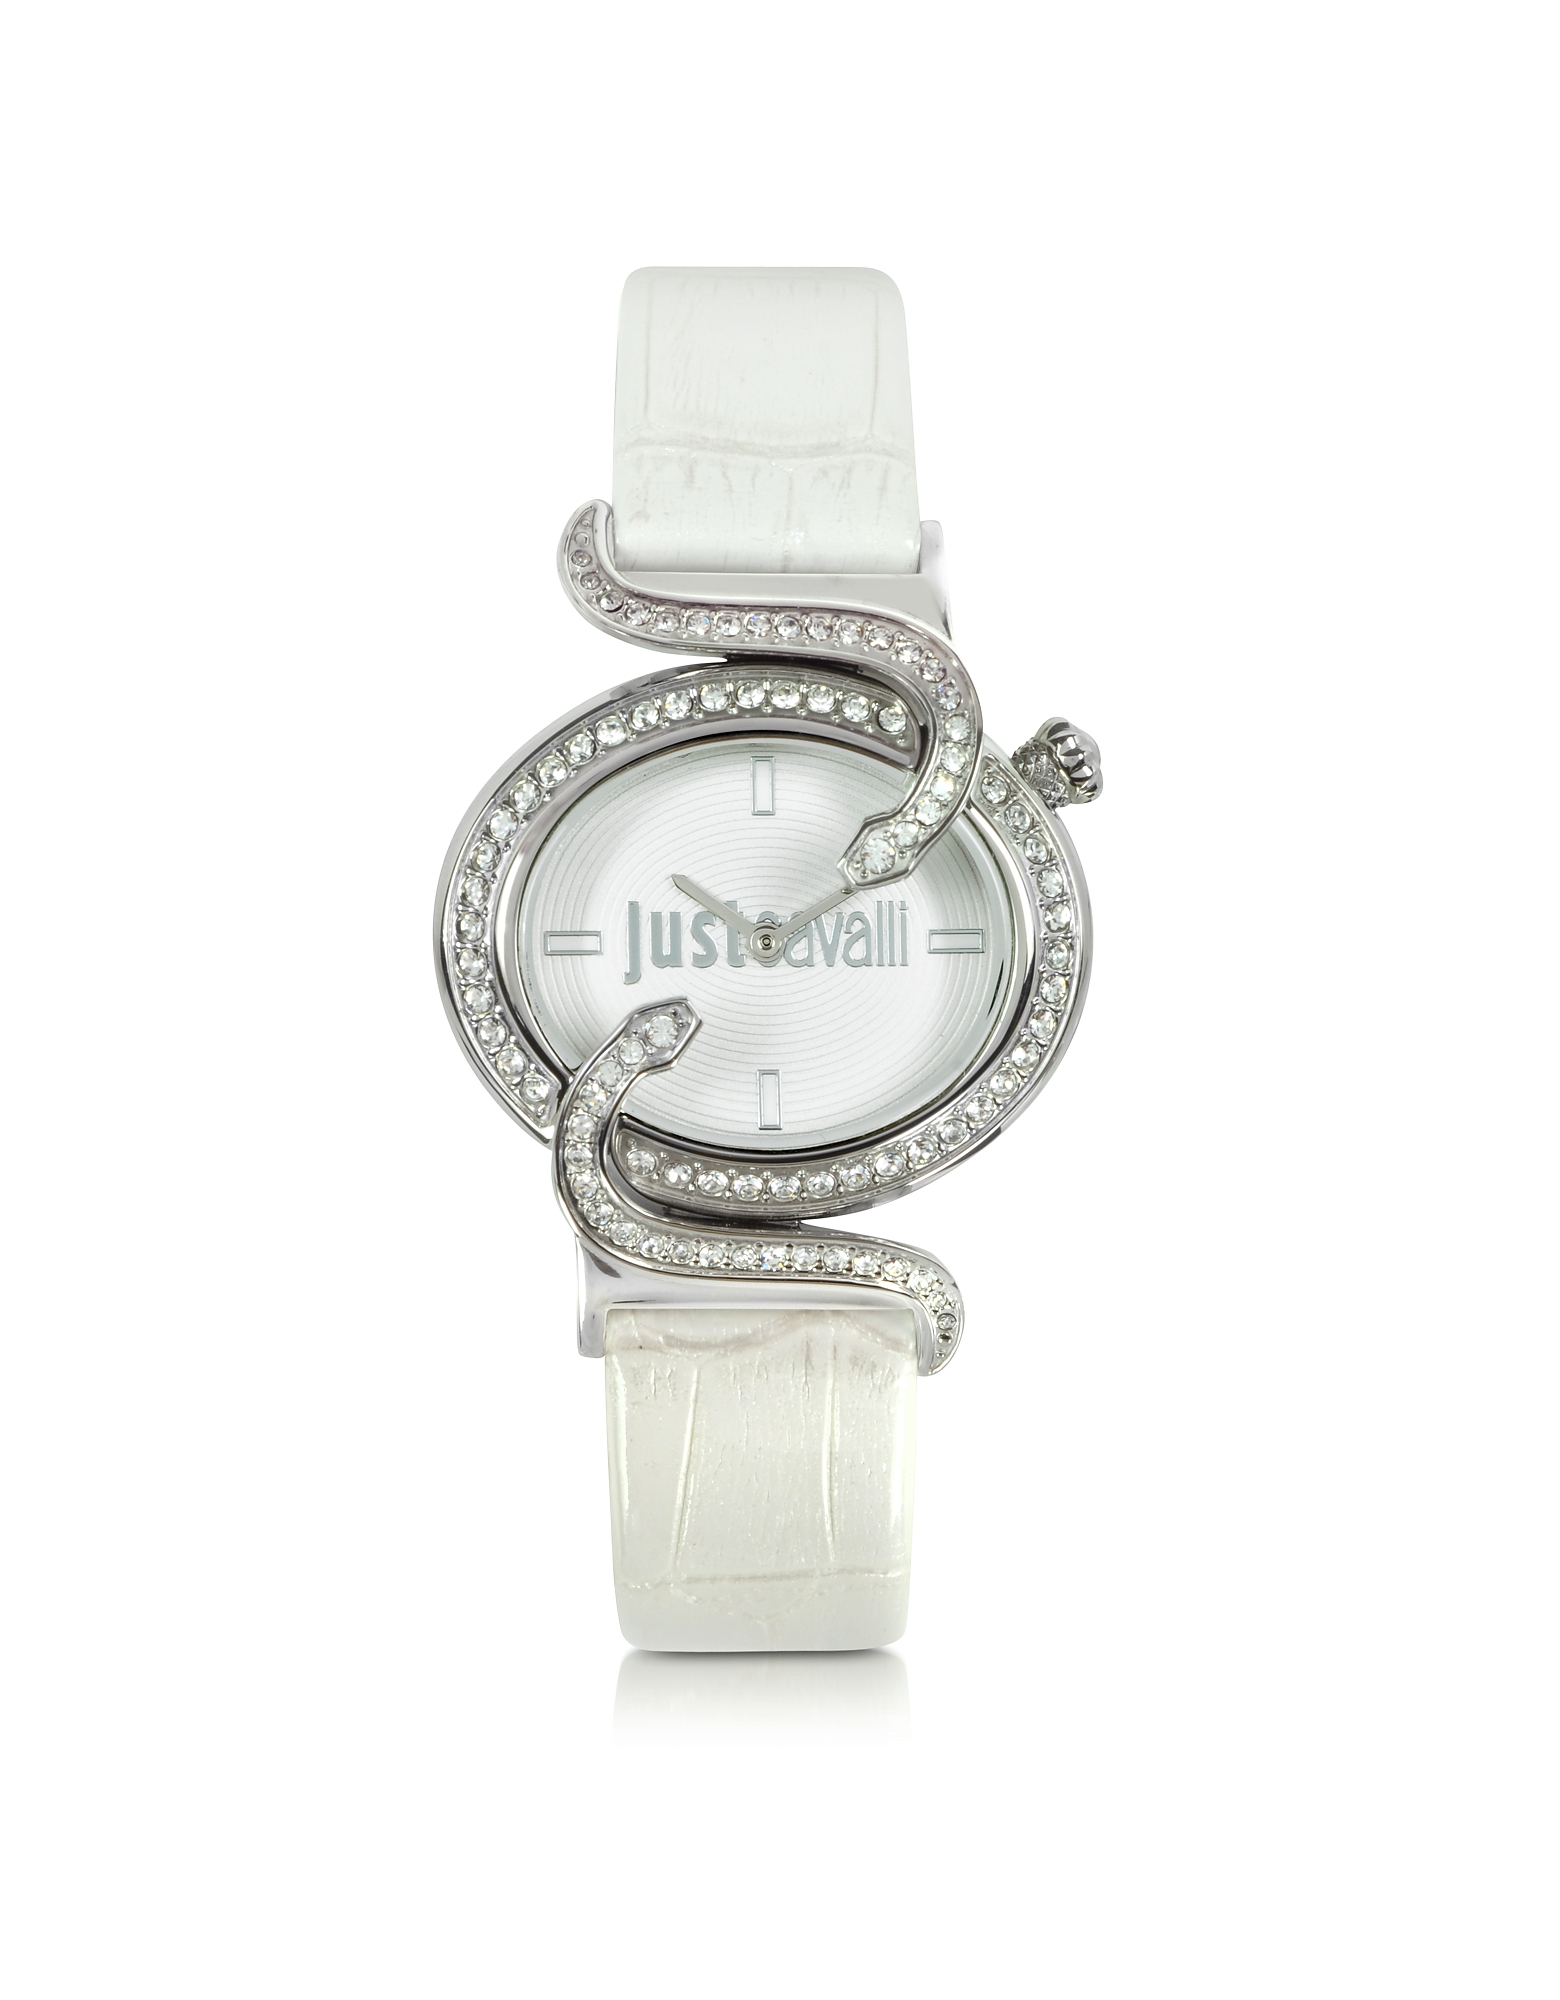 Just Cavalli Women's Watches, Sin 2H Silver Tone Dial Women's Watch